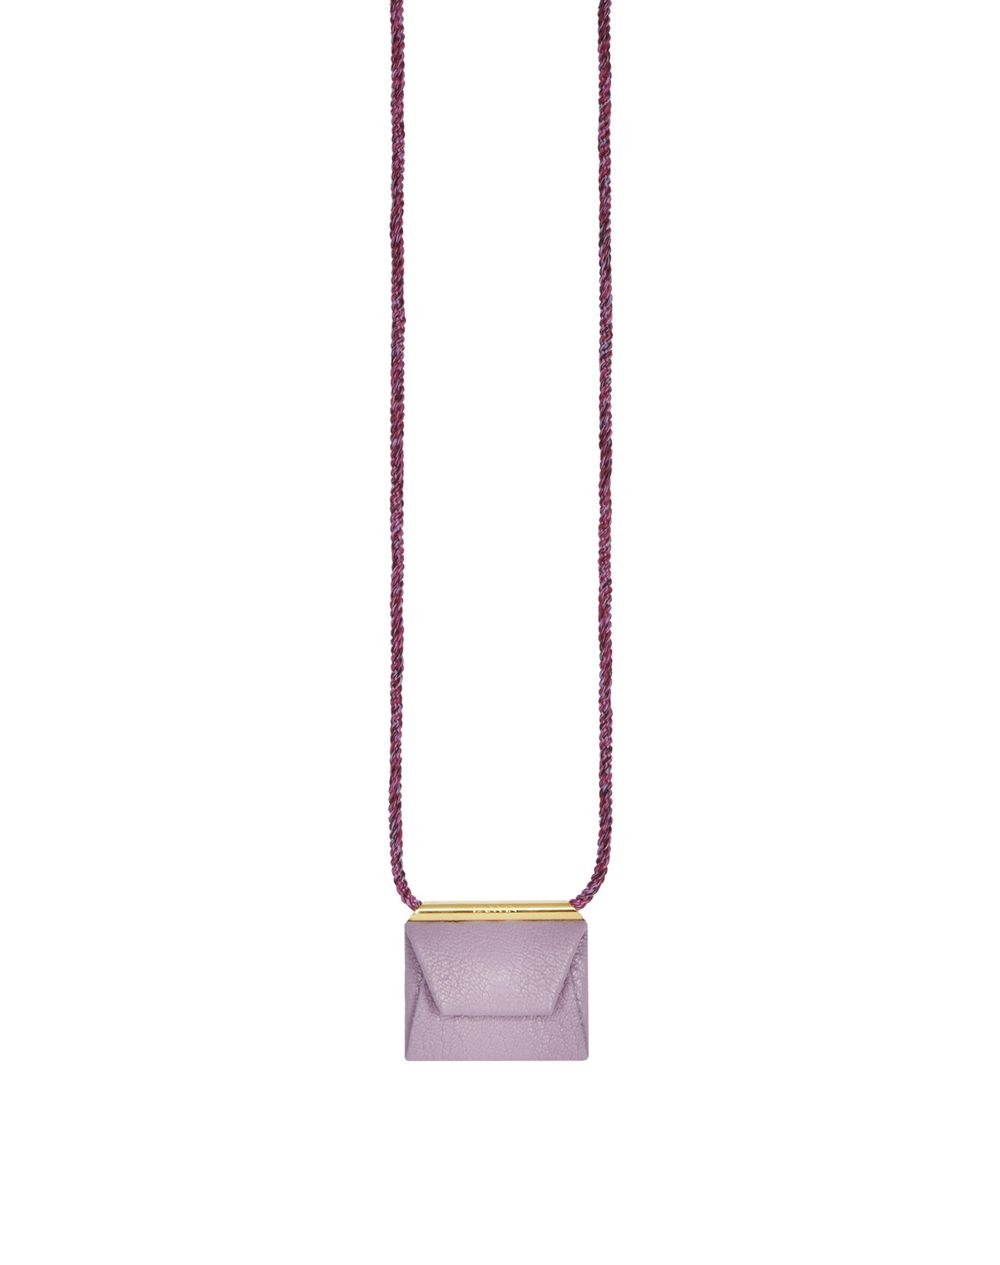 LILAC ENVELOPE NECKLACE - Lanvin